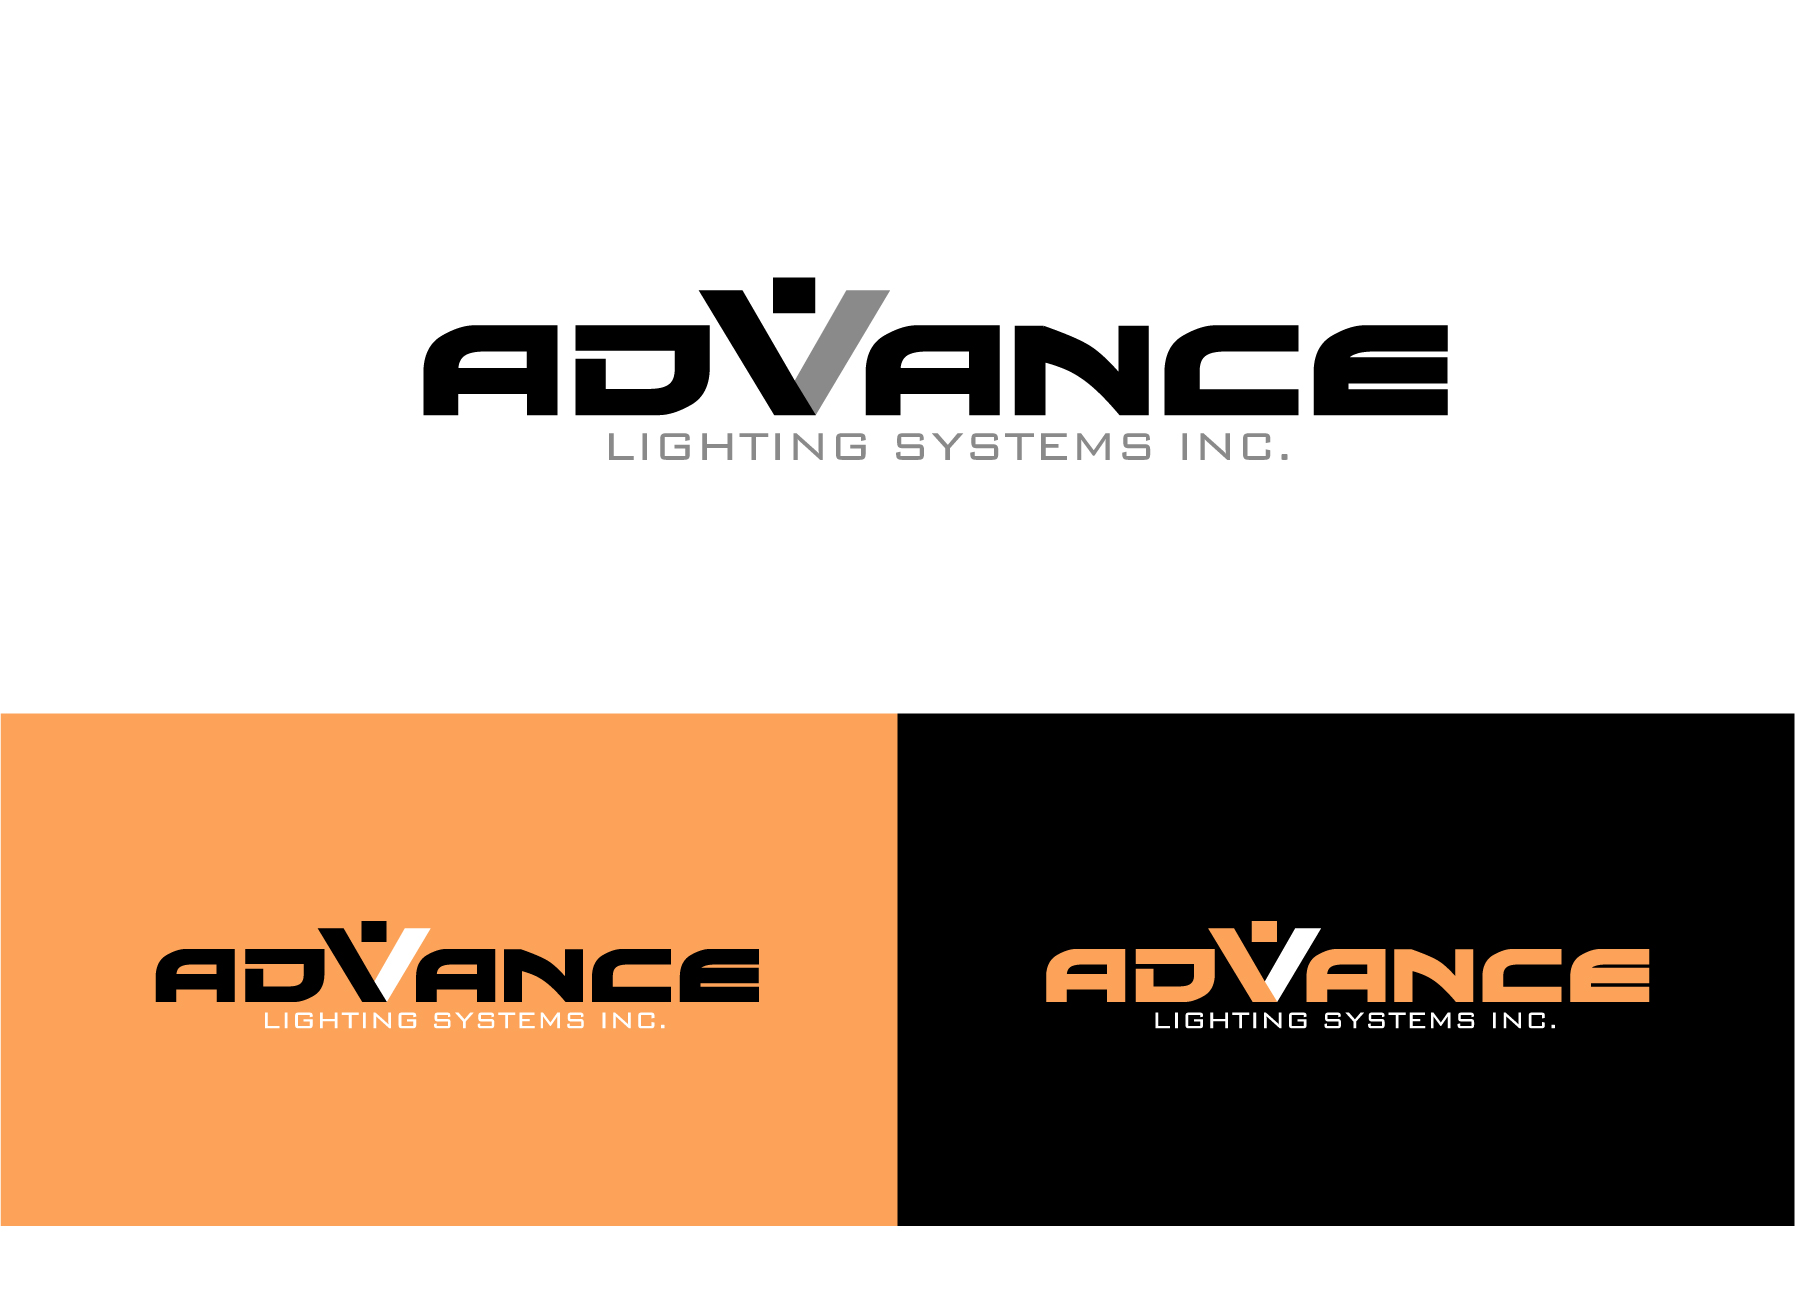 Logo Design by Wilfredo Mendoza - Entry No. 49 in the Logo Design Contest New Logo Design Needed for  Company Advanced Lighting Systems Inc..